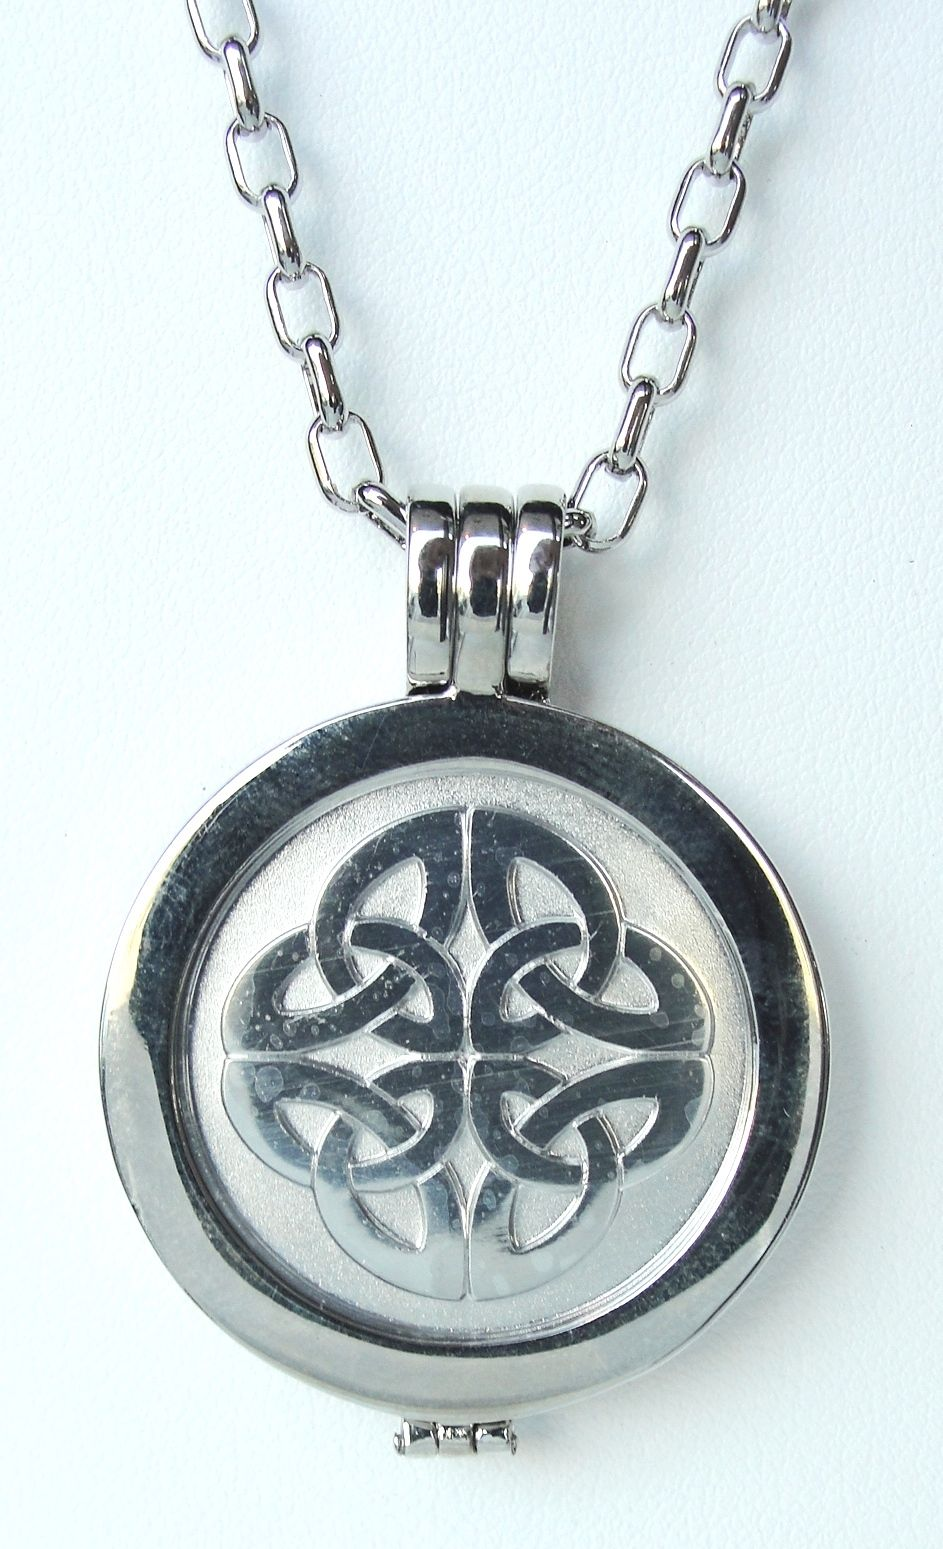 Interchangeable coin necklace ireland / Medal count 2018